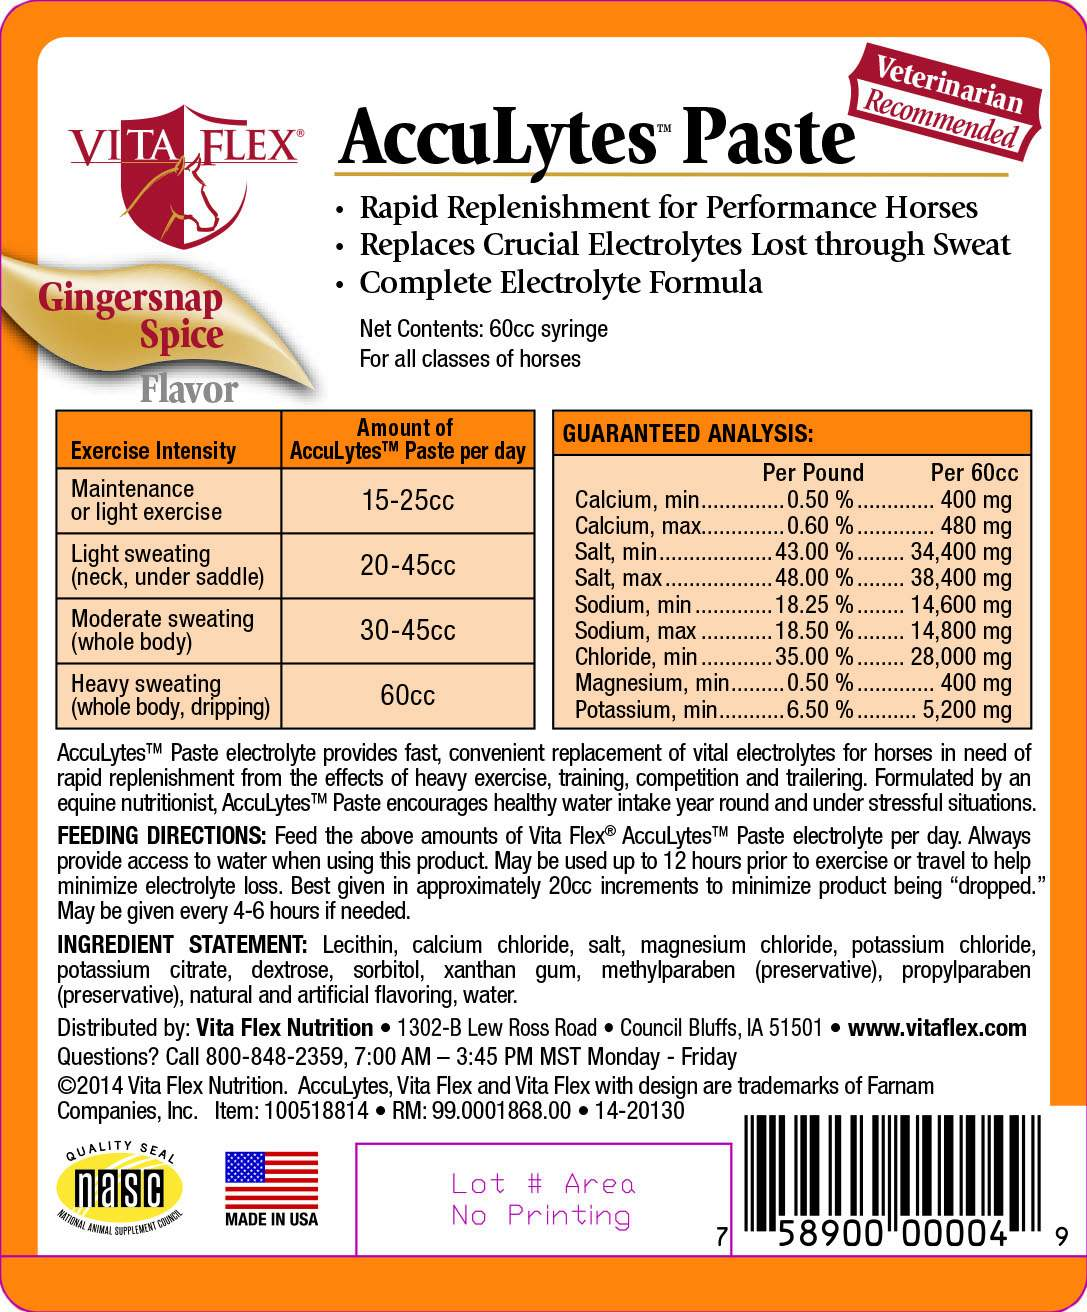 Vita Flex AccuLytes Paste Gingersnap Spice Flavor Label Front